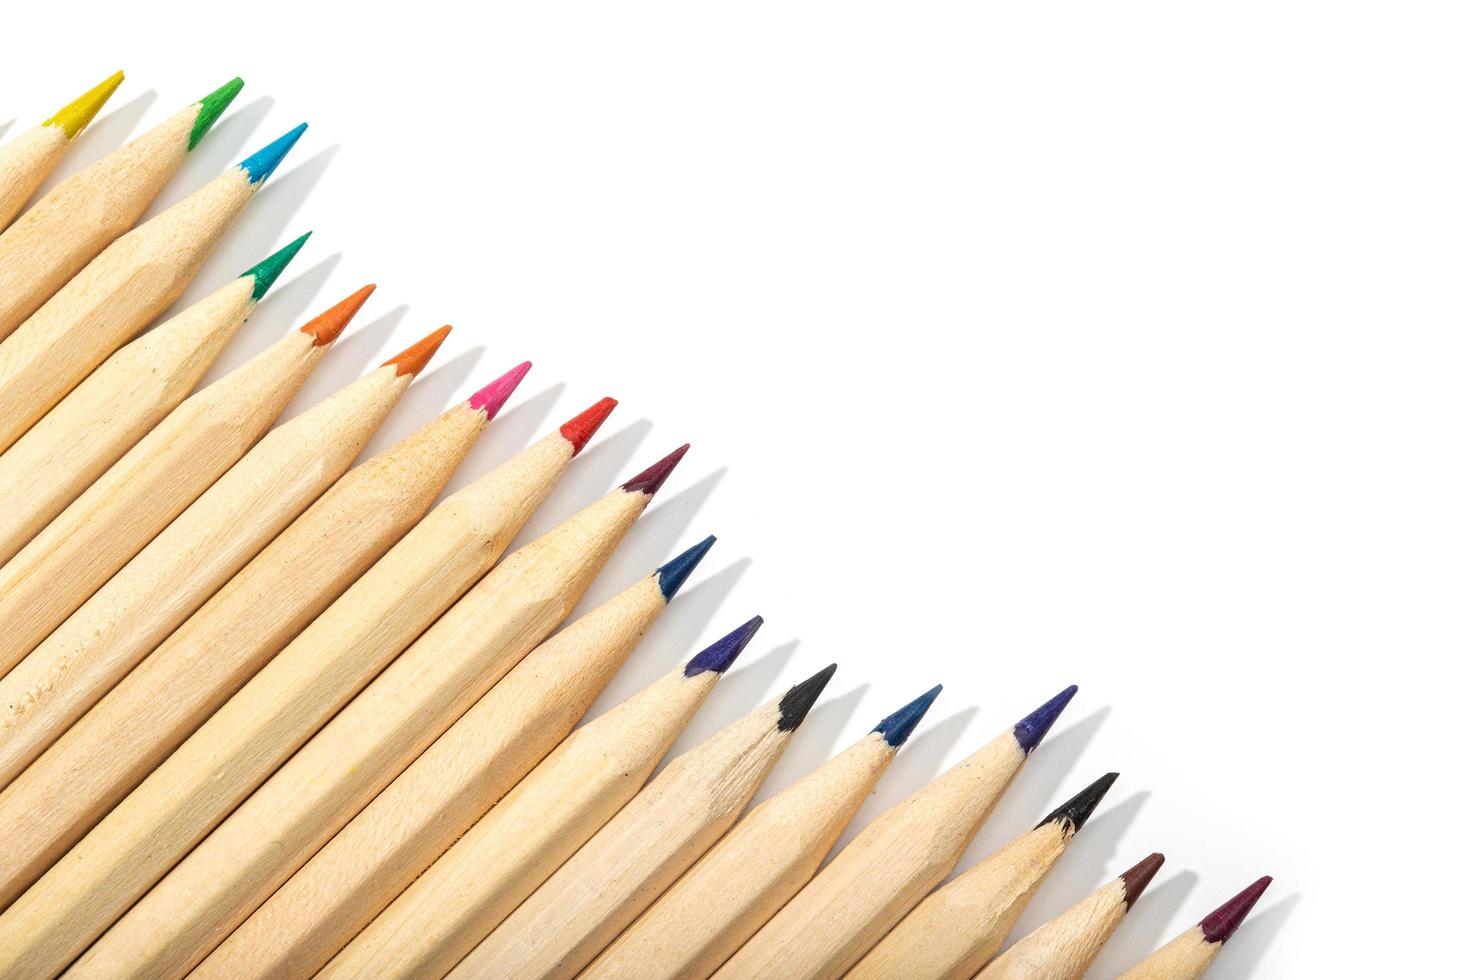 Wooden colored pencils on white background photo